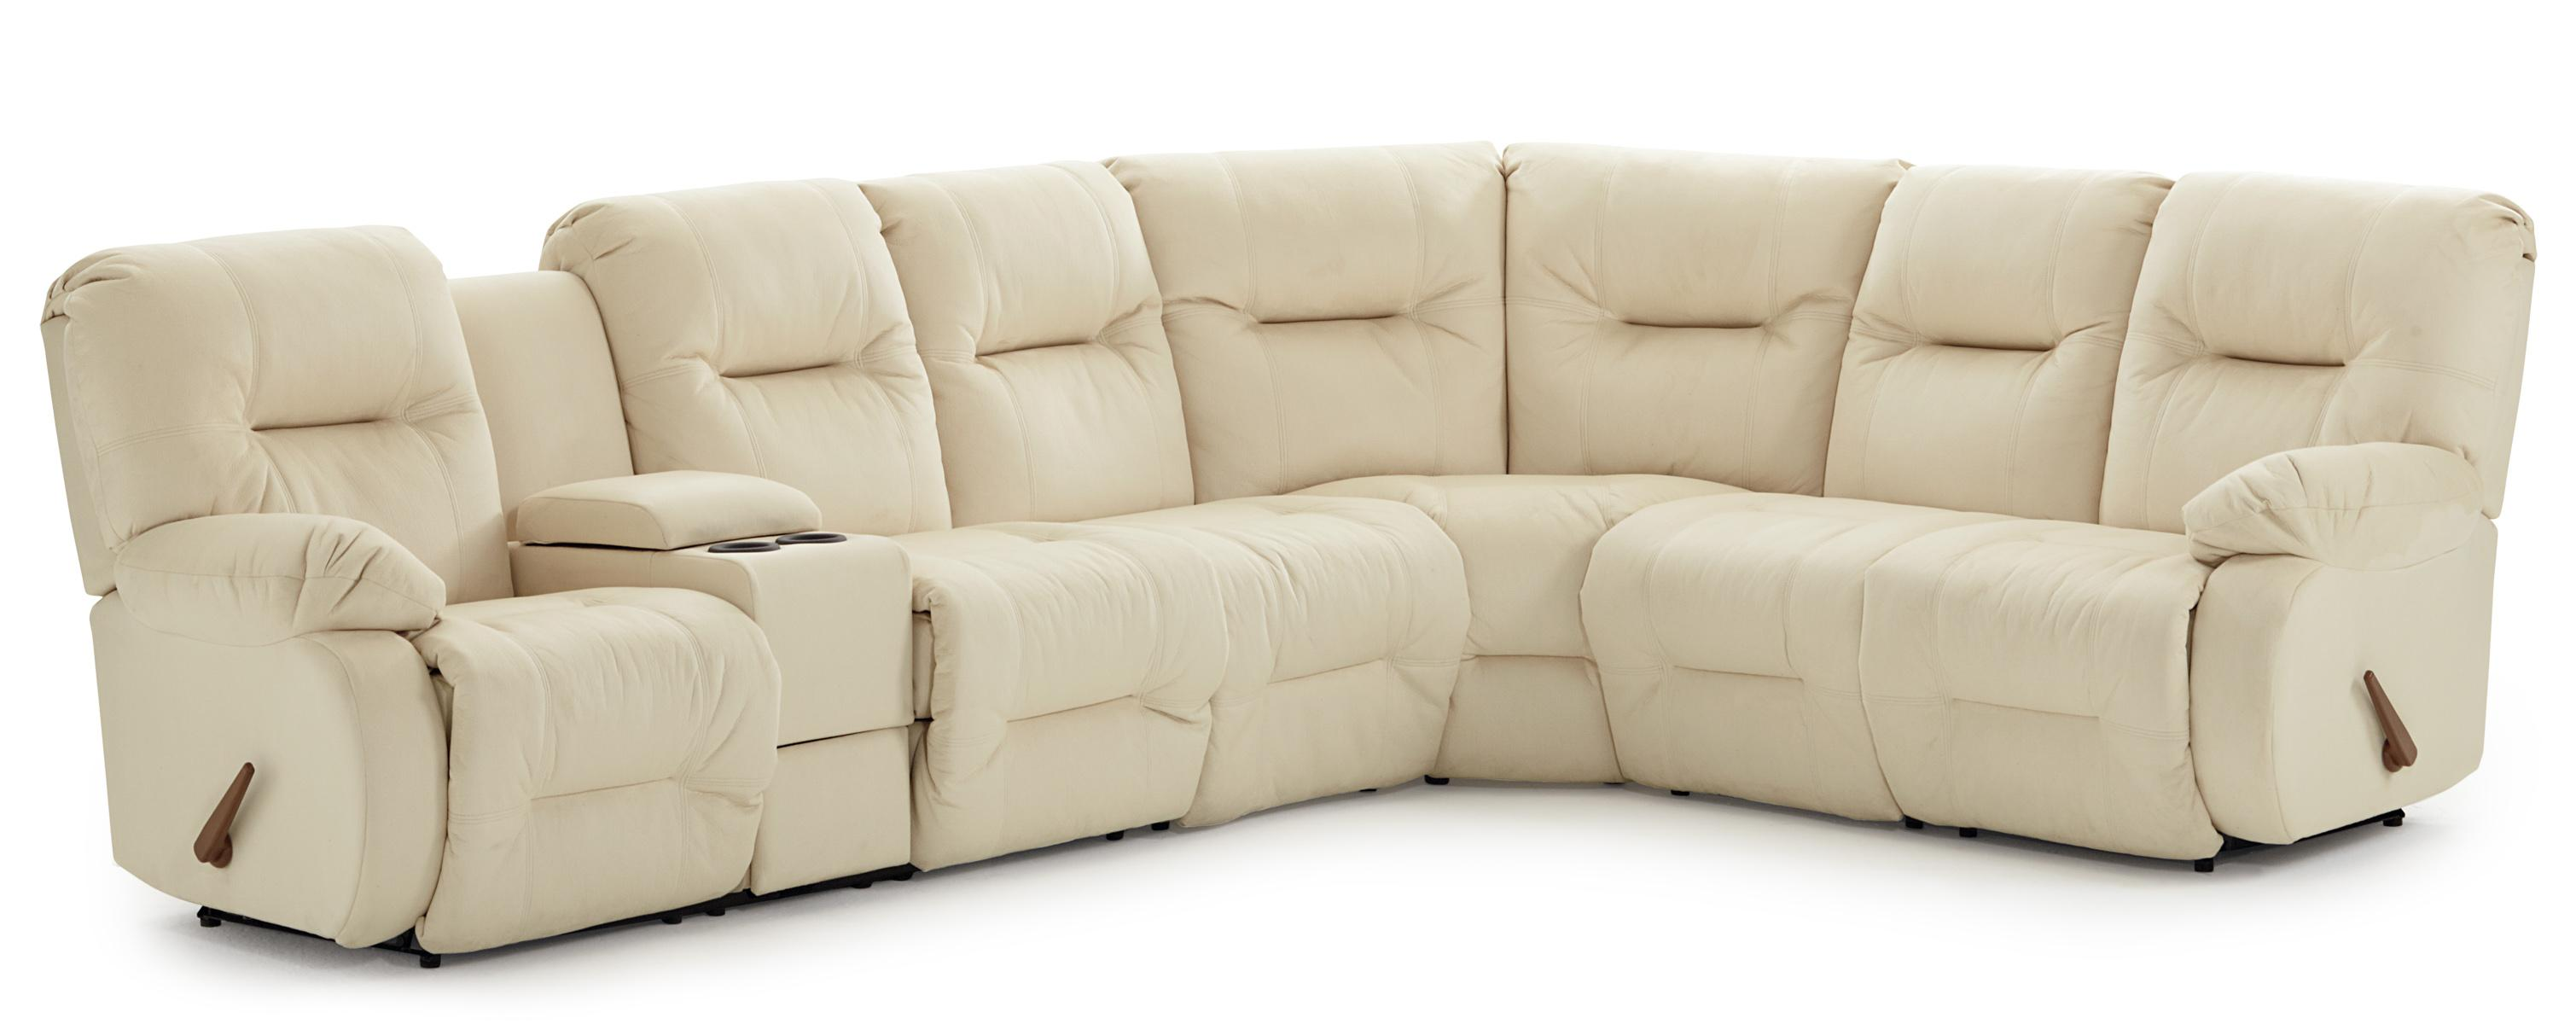 Casual Reclining Sectional Sofa with Storage Console and